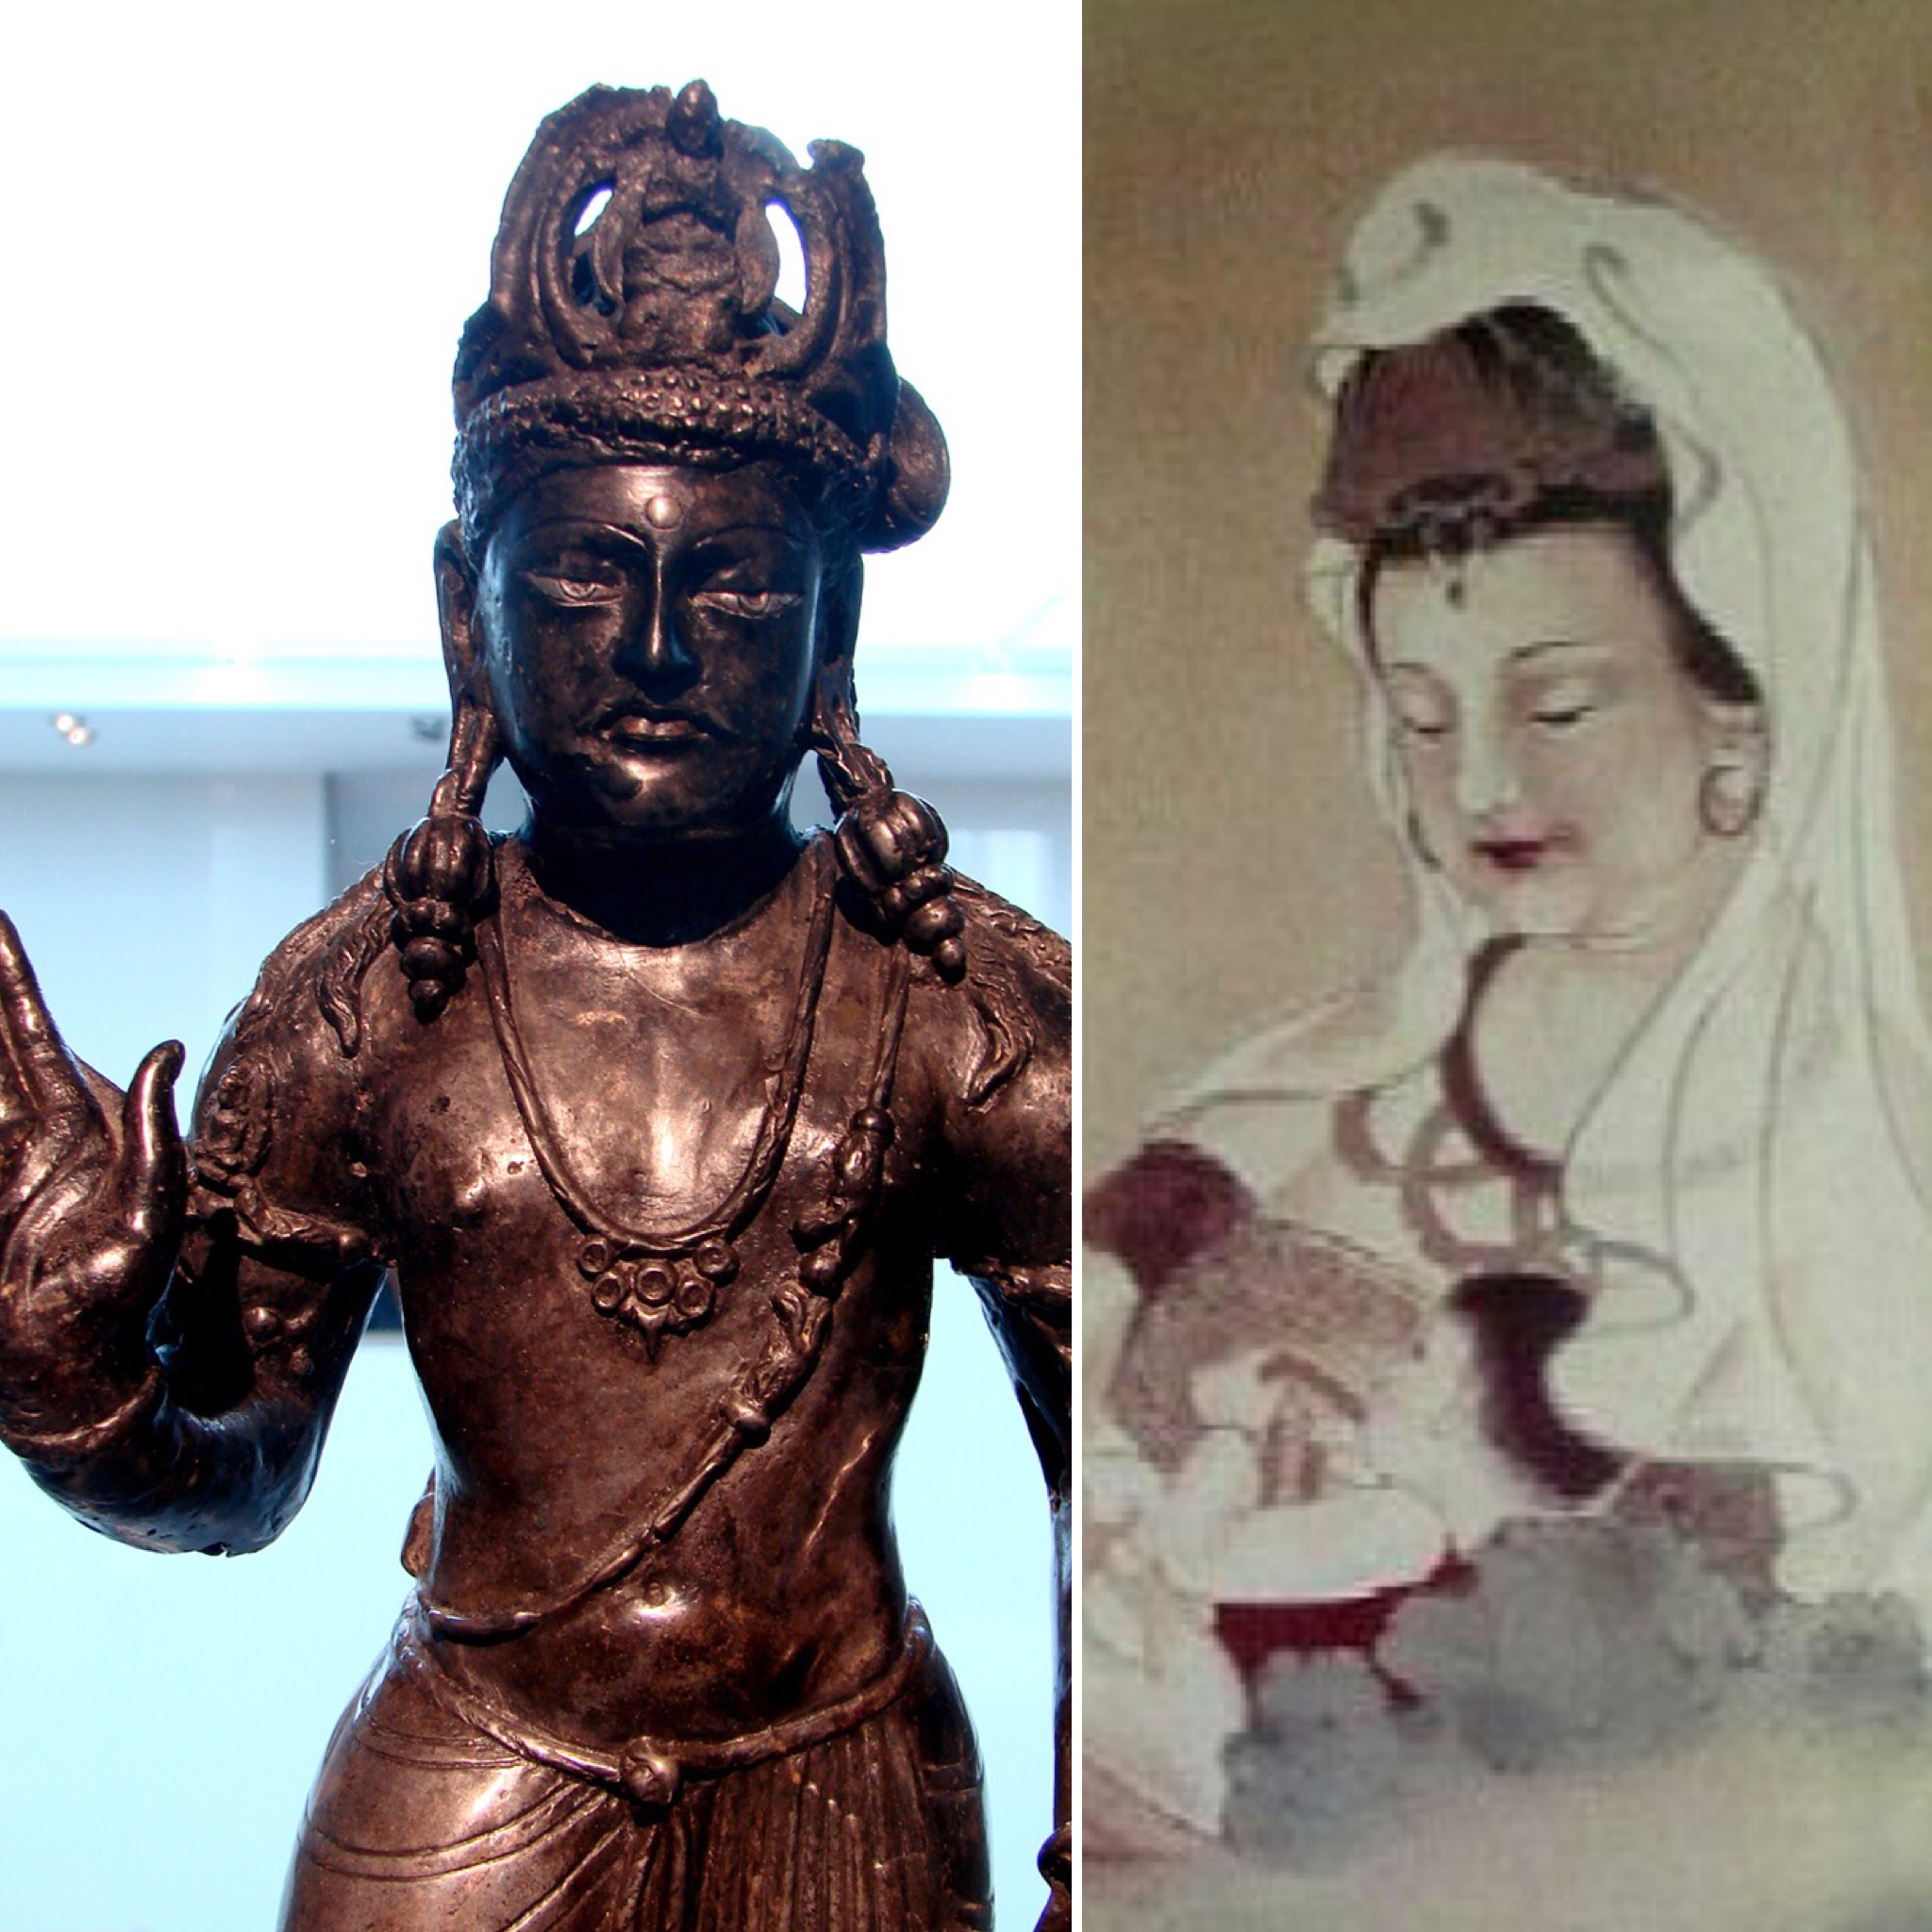 An example of the Guanyin's gender fluidity. On the left, a Guanyin from 3rd c. sculpture from India, looking pretty darn male. On the right, a modern Chinese portrait that might as well be the Madonna and child.